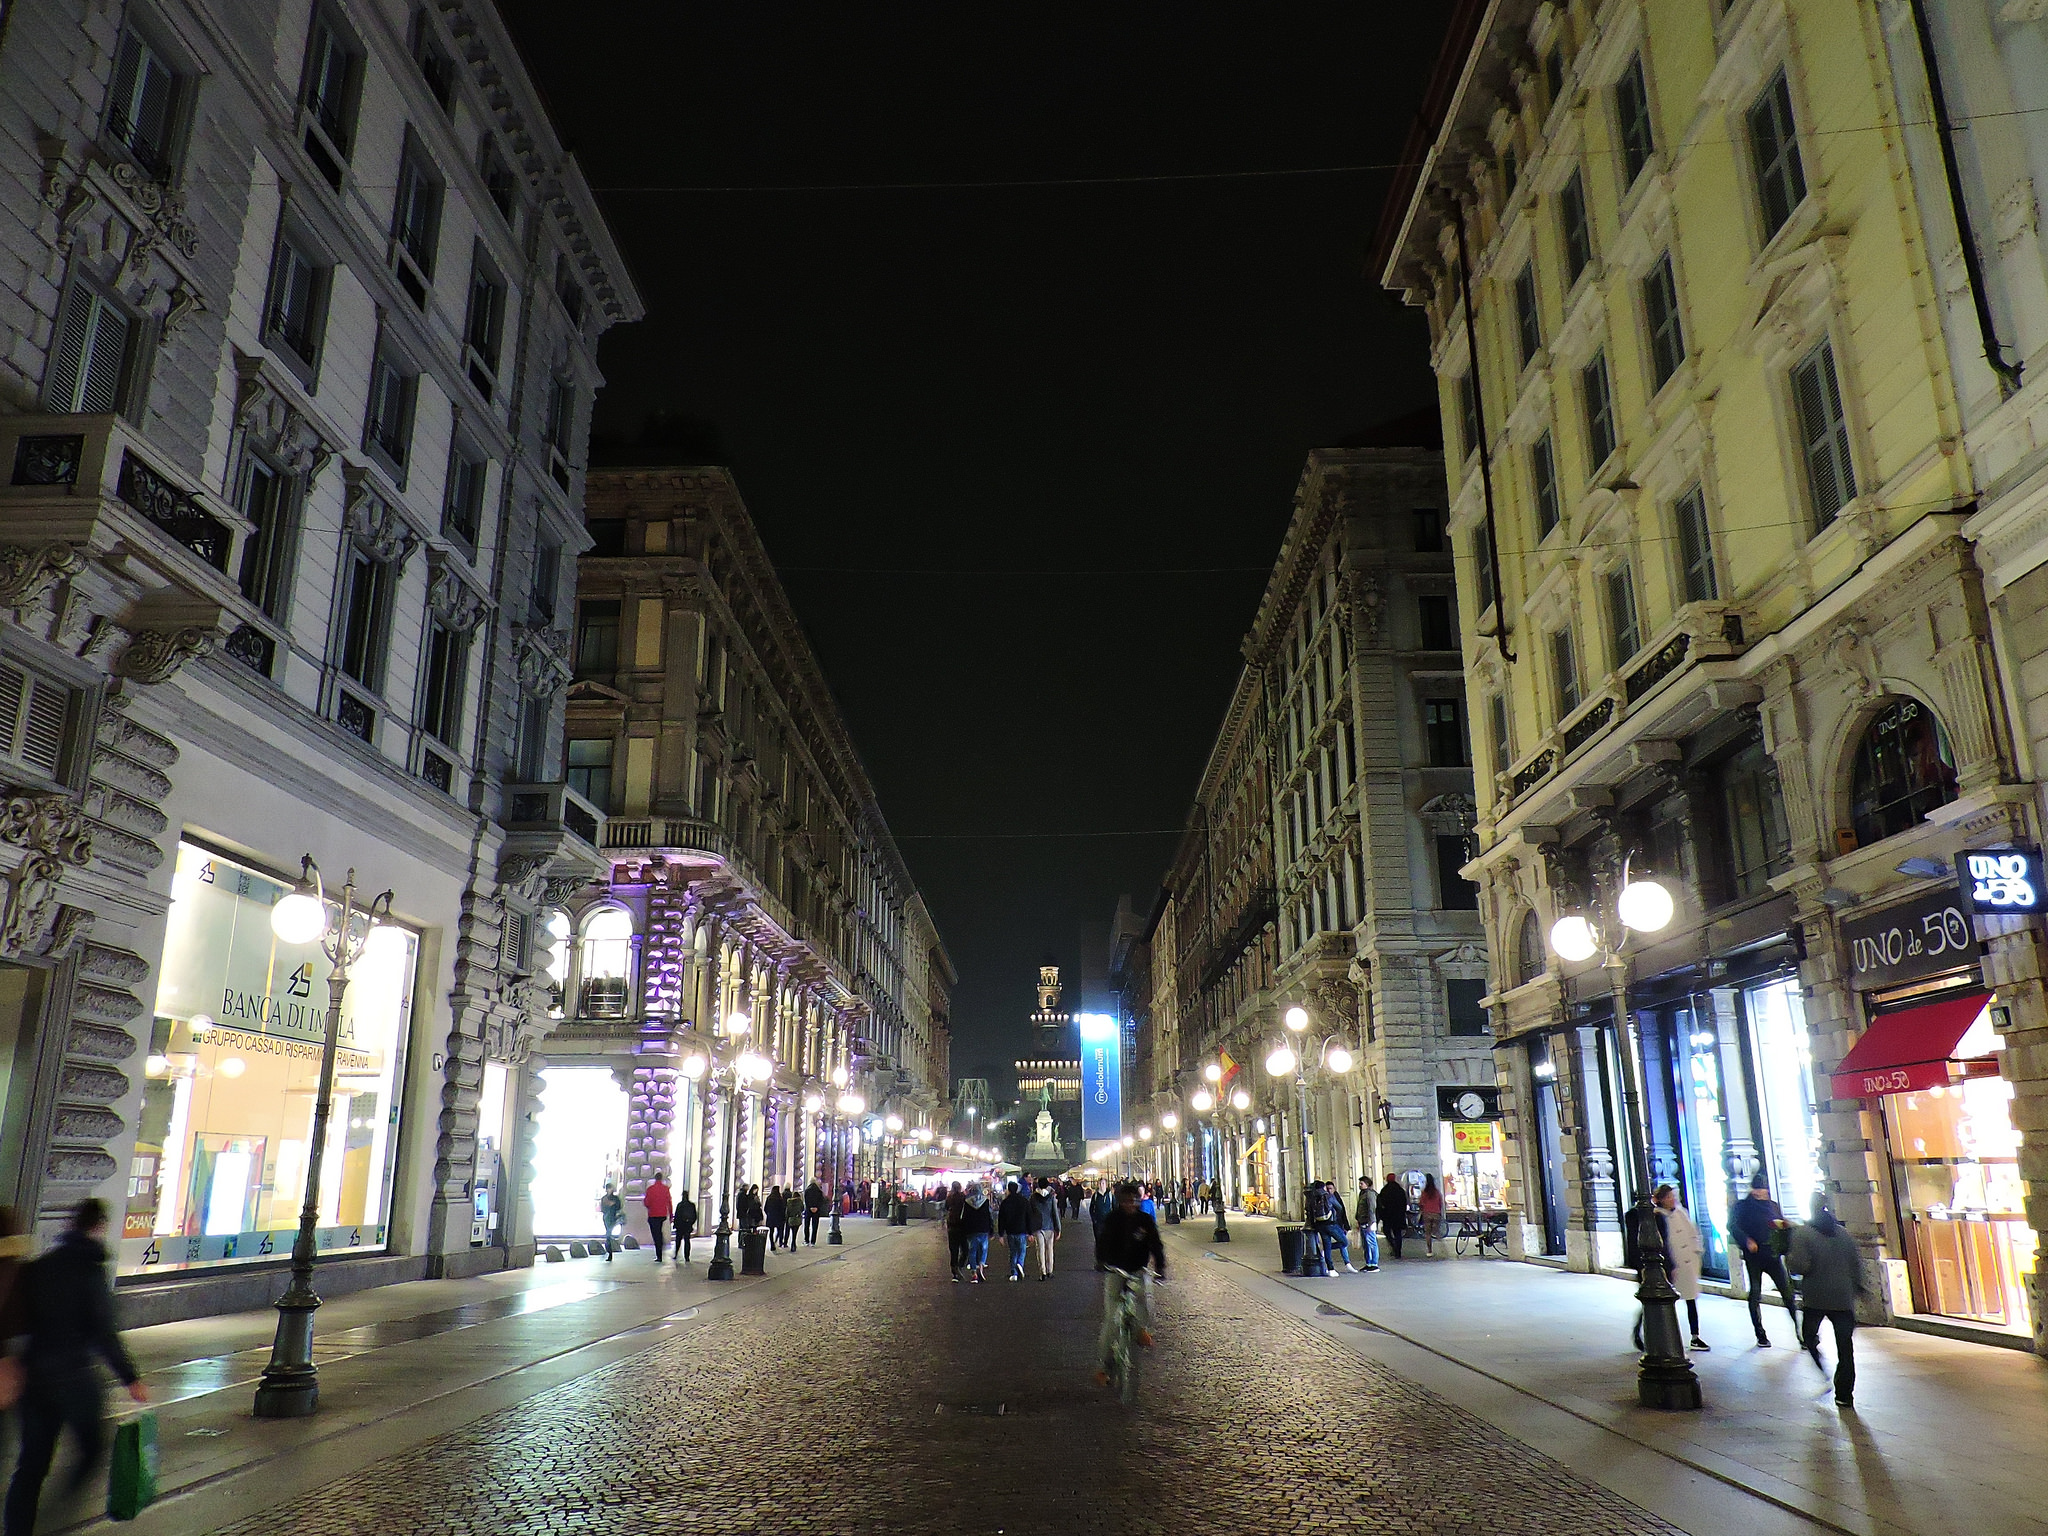 """Milano, via Dante"" photo by Dimitris Kamaras"